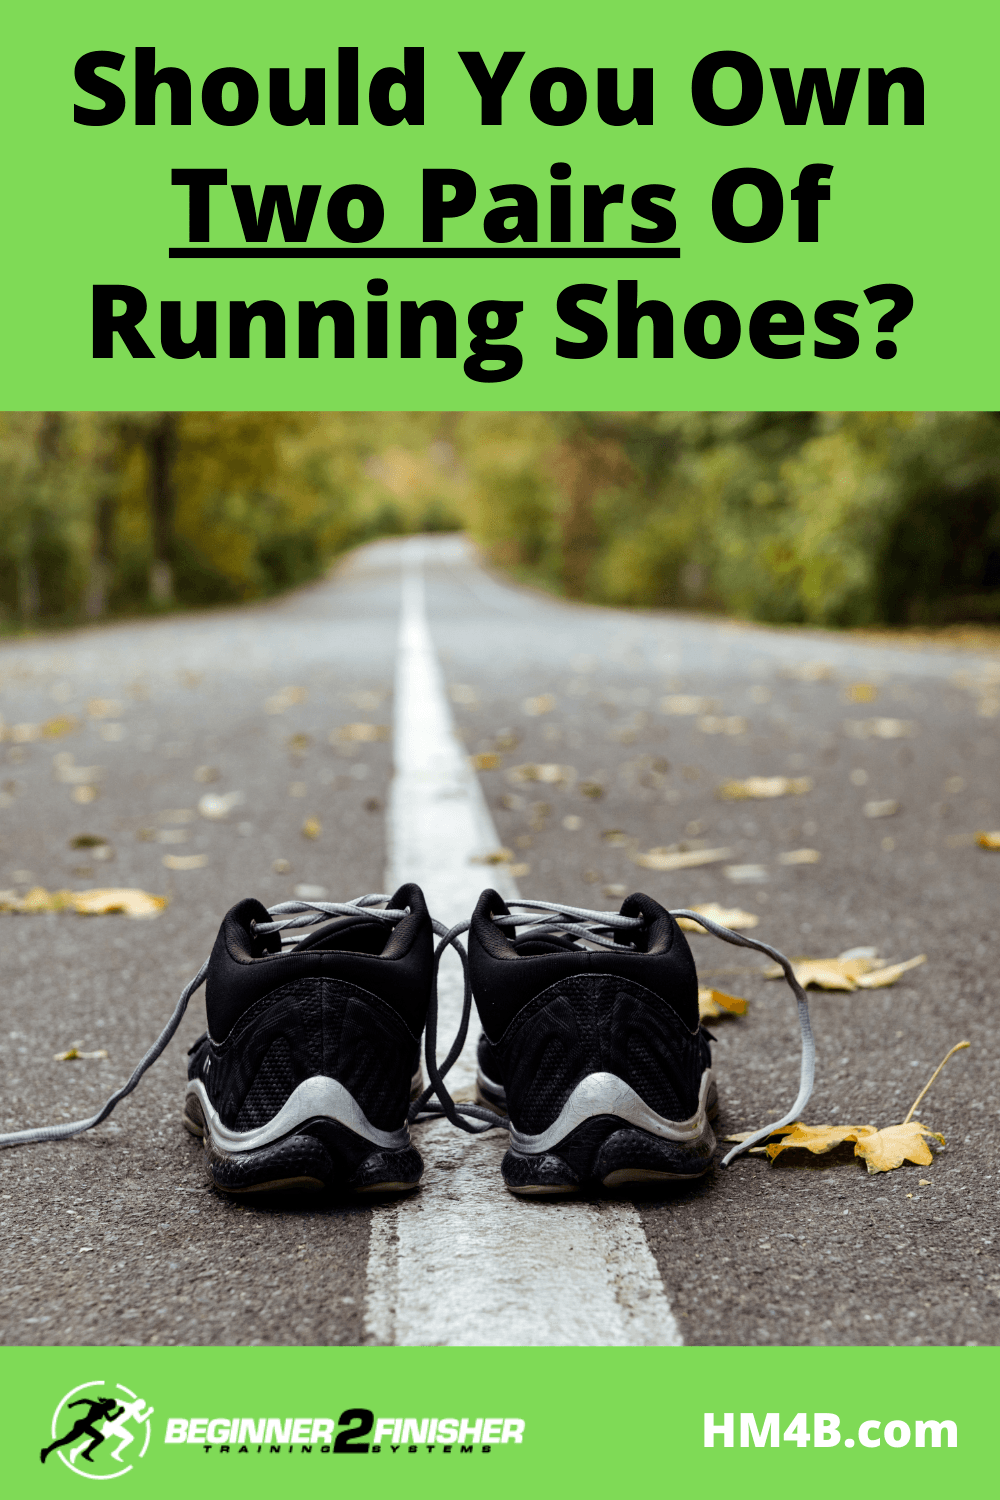 Should You Own Two Pairs Of Running Shoes And Switch Them Out?